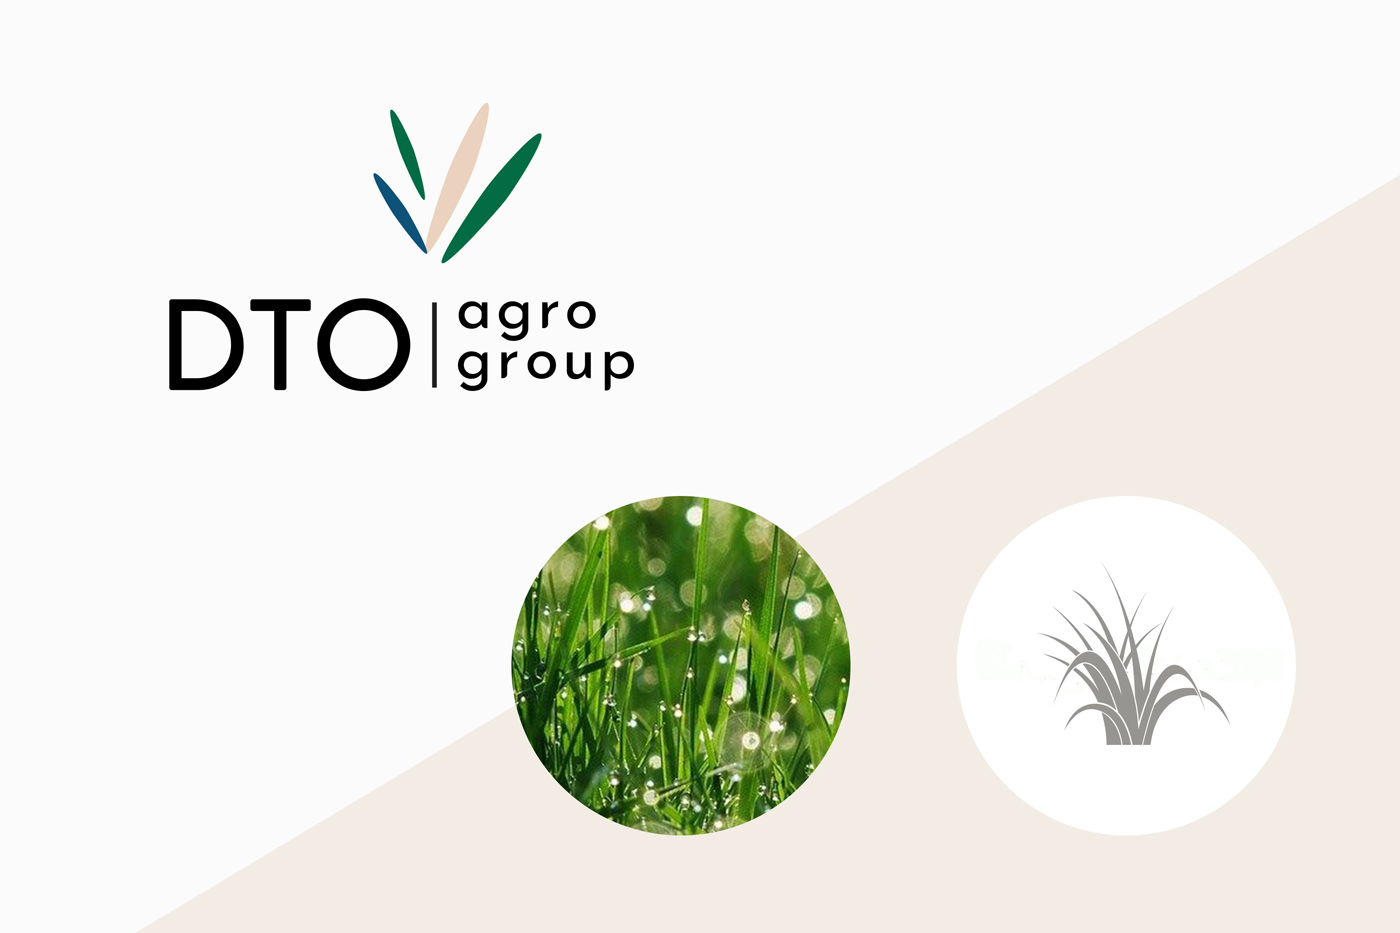 Logo and brand identity for ukrainian agricultural company DTO